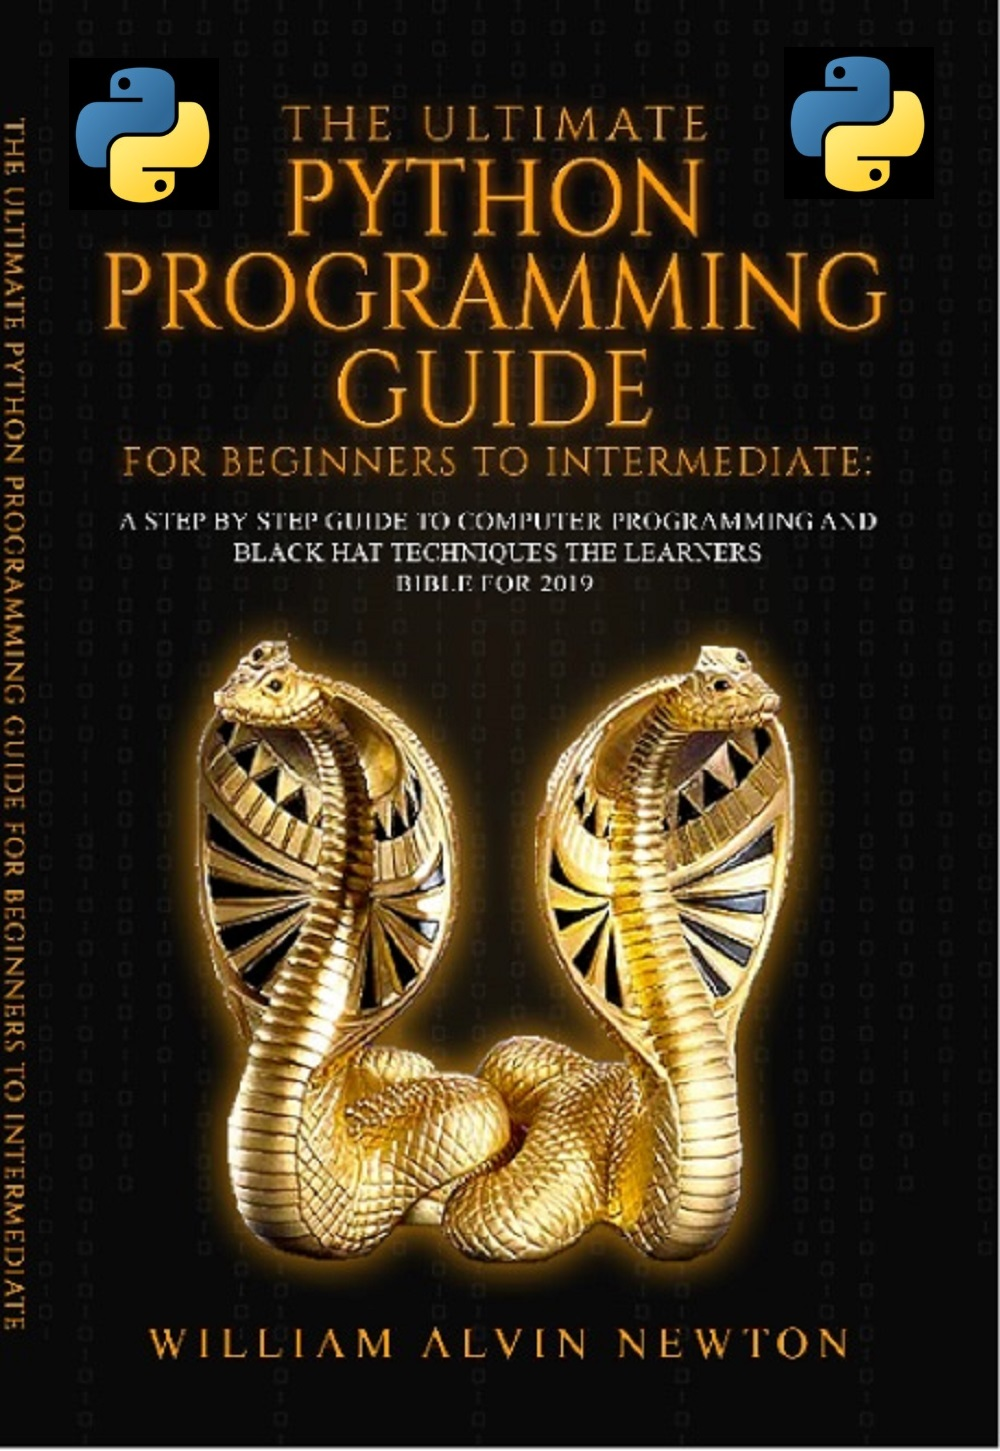 The ultimate python programming guide for beginners to intermediate: